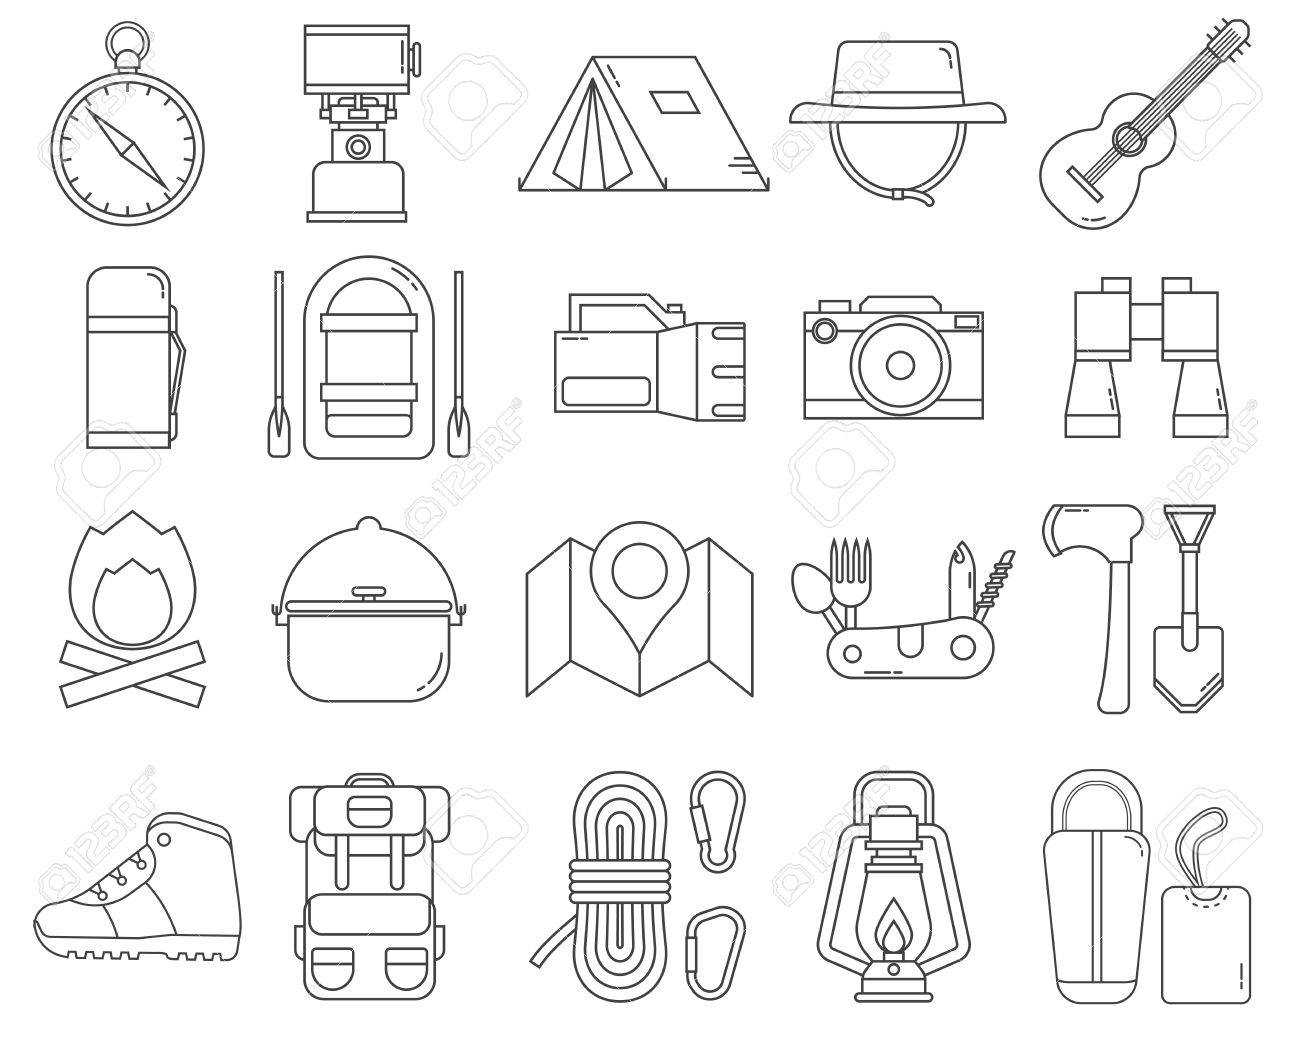 Camping Monoline Icons Collection Hike Outdoor Thin Line Elements Hiking Gear And Essentials Lineart